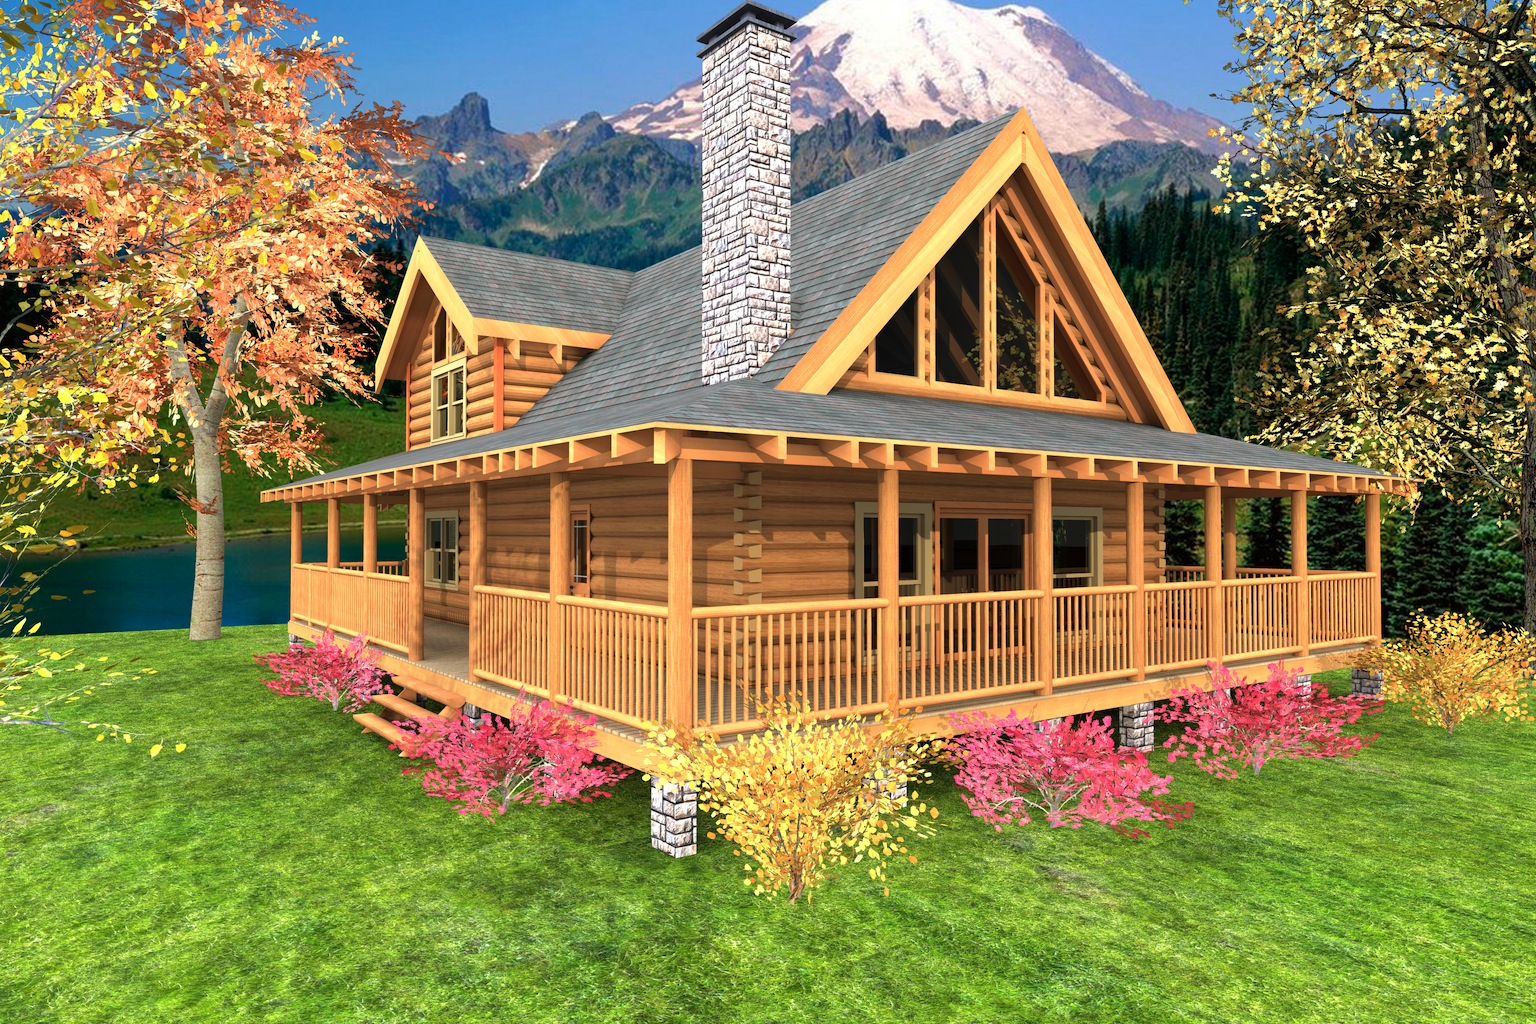 Mountain Crest Log Home Custom Timber Log Homes with size 1536 X 1024